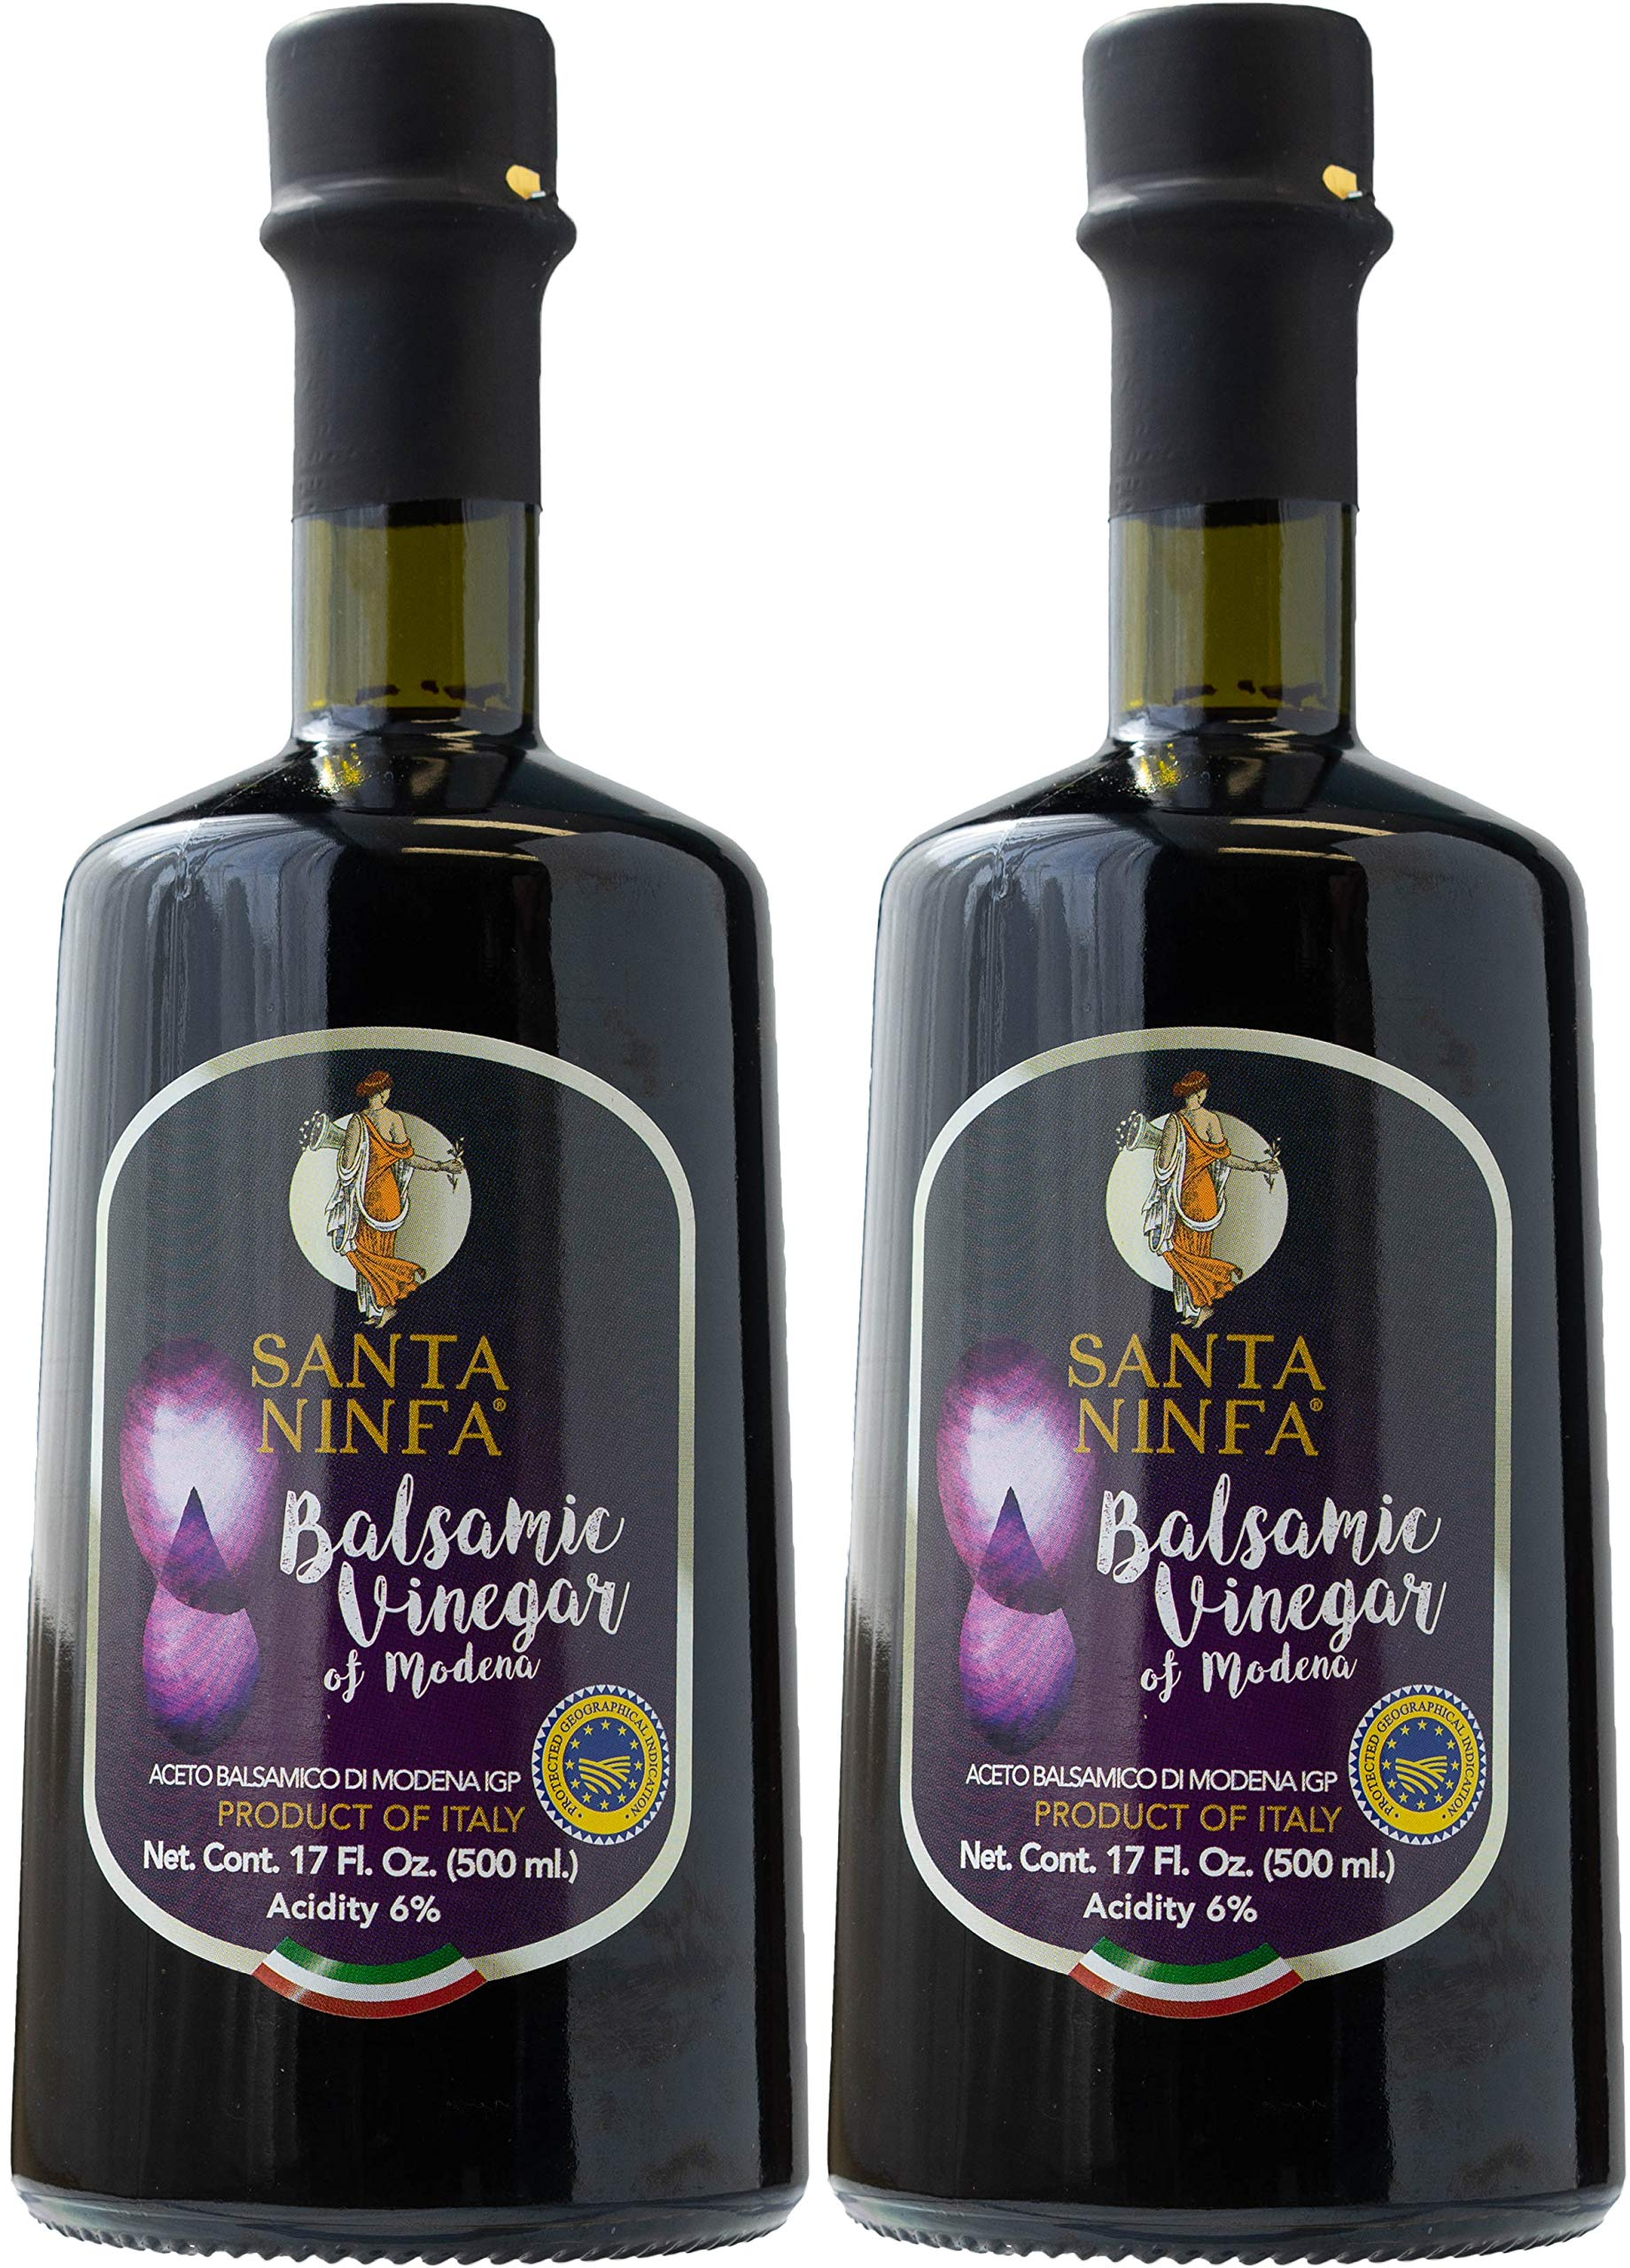 Santa Ninfa Balsamic Vinegar of Modena IGP, 17 Fl Oz Glass Bottle, (Pack of 2) 1 Ships in Amazon Certified Frustration-Free Packaging Pack of two Balsamic Vinegar of Modena, Italy, 17 oz Glass Bottles This Balsamic vinegar is matured in wooden casks to achieve a complex flavor balancing sweetness and acidity.